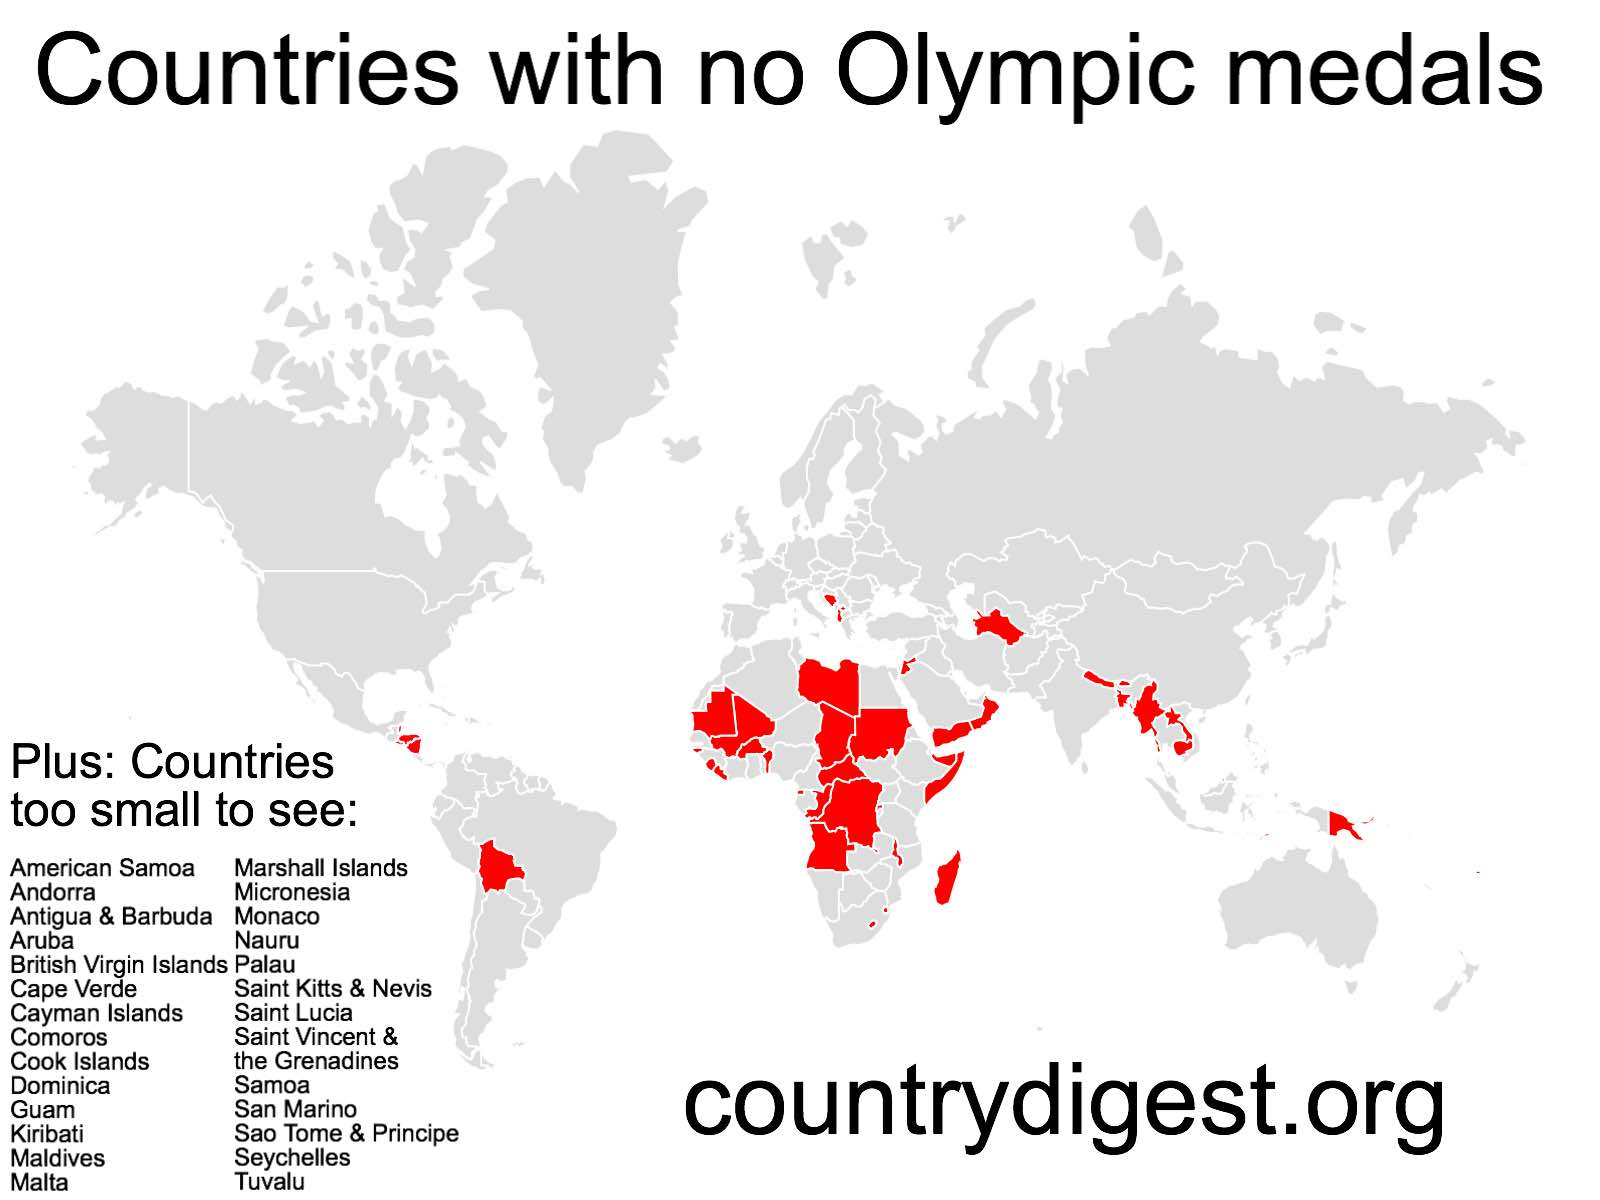 Countries that have never won an Olympic medal